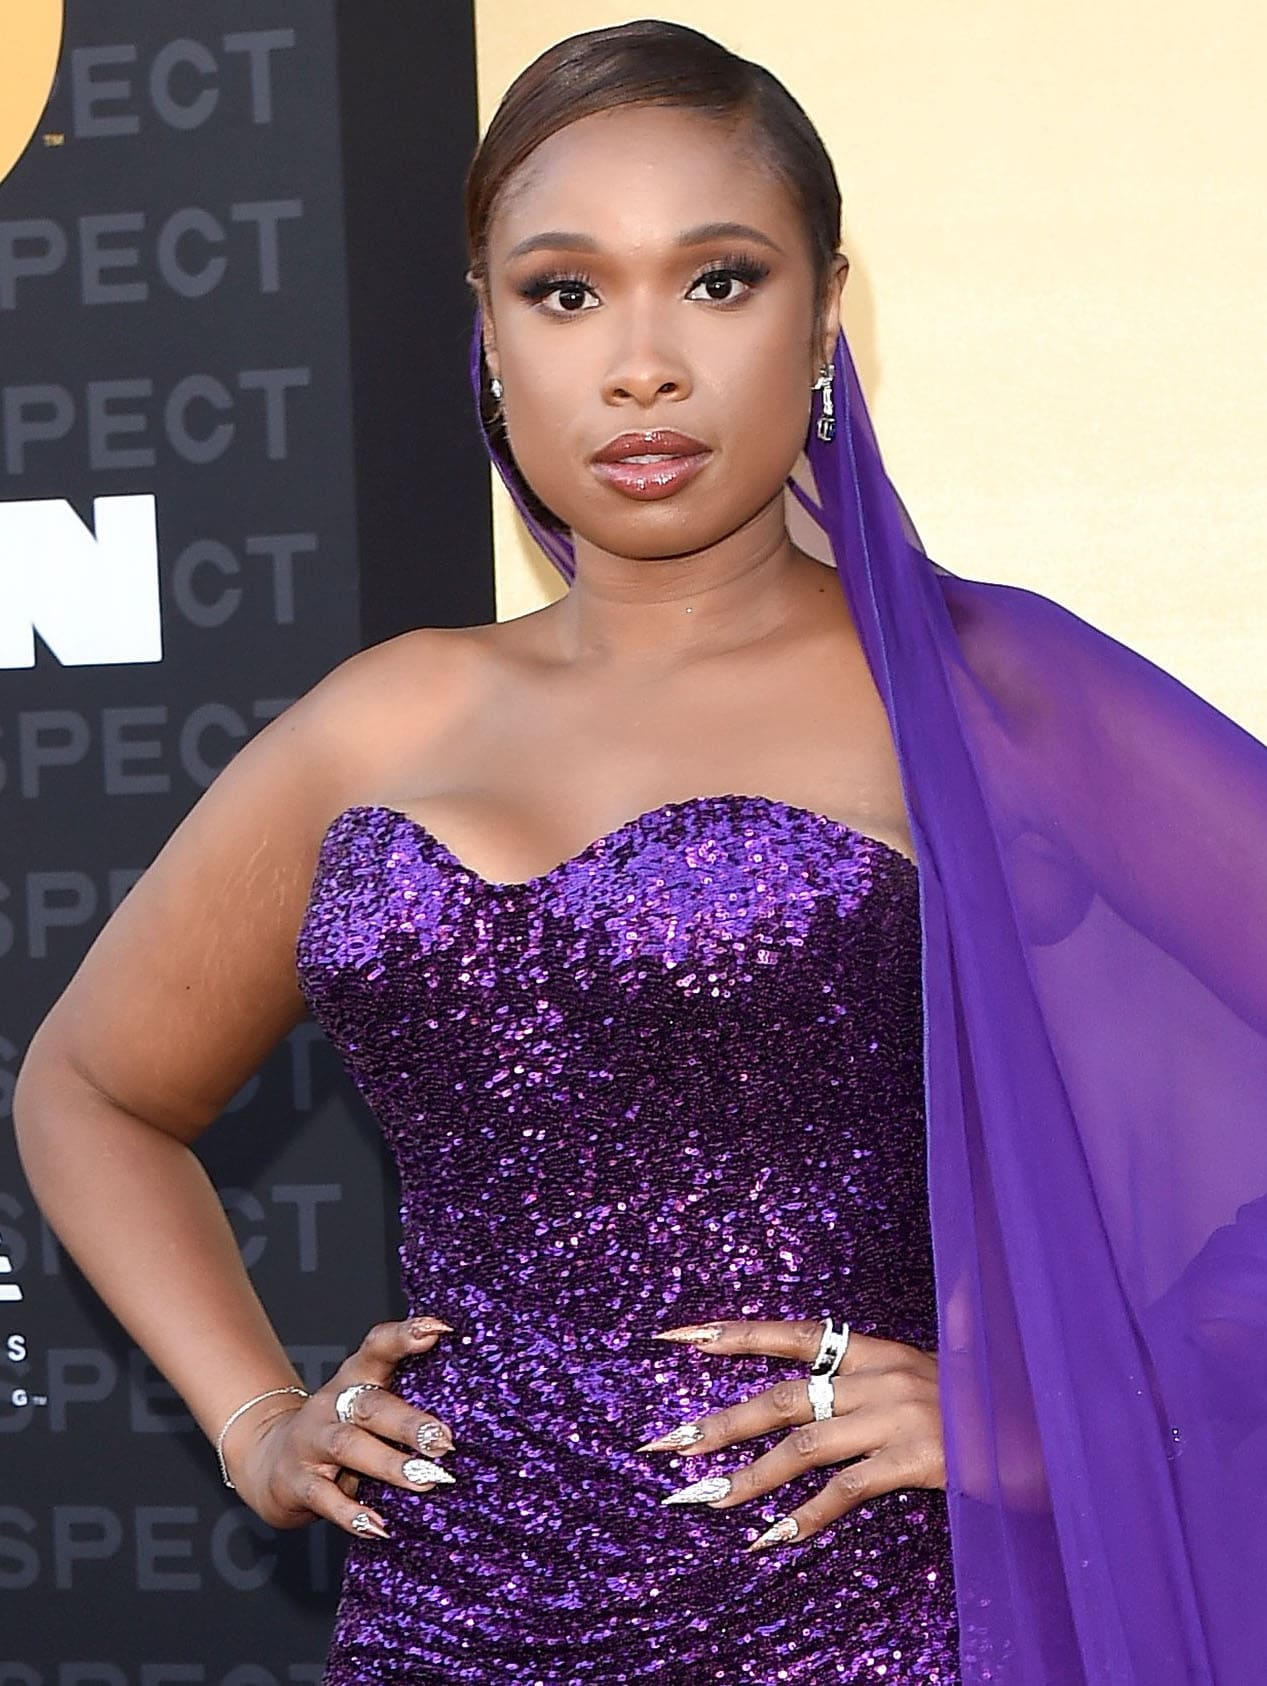 Jennifer Hudson styles her hair in a neat side-parted bun and wears neutral makeup with pink smokey eyeshadow